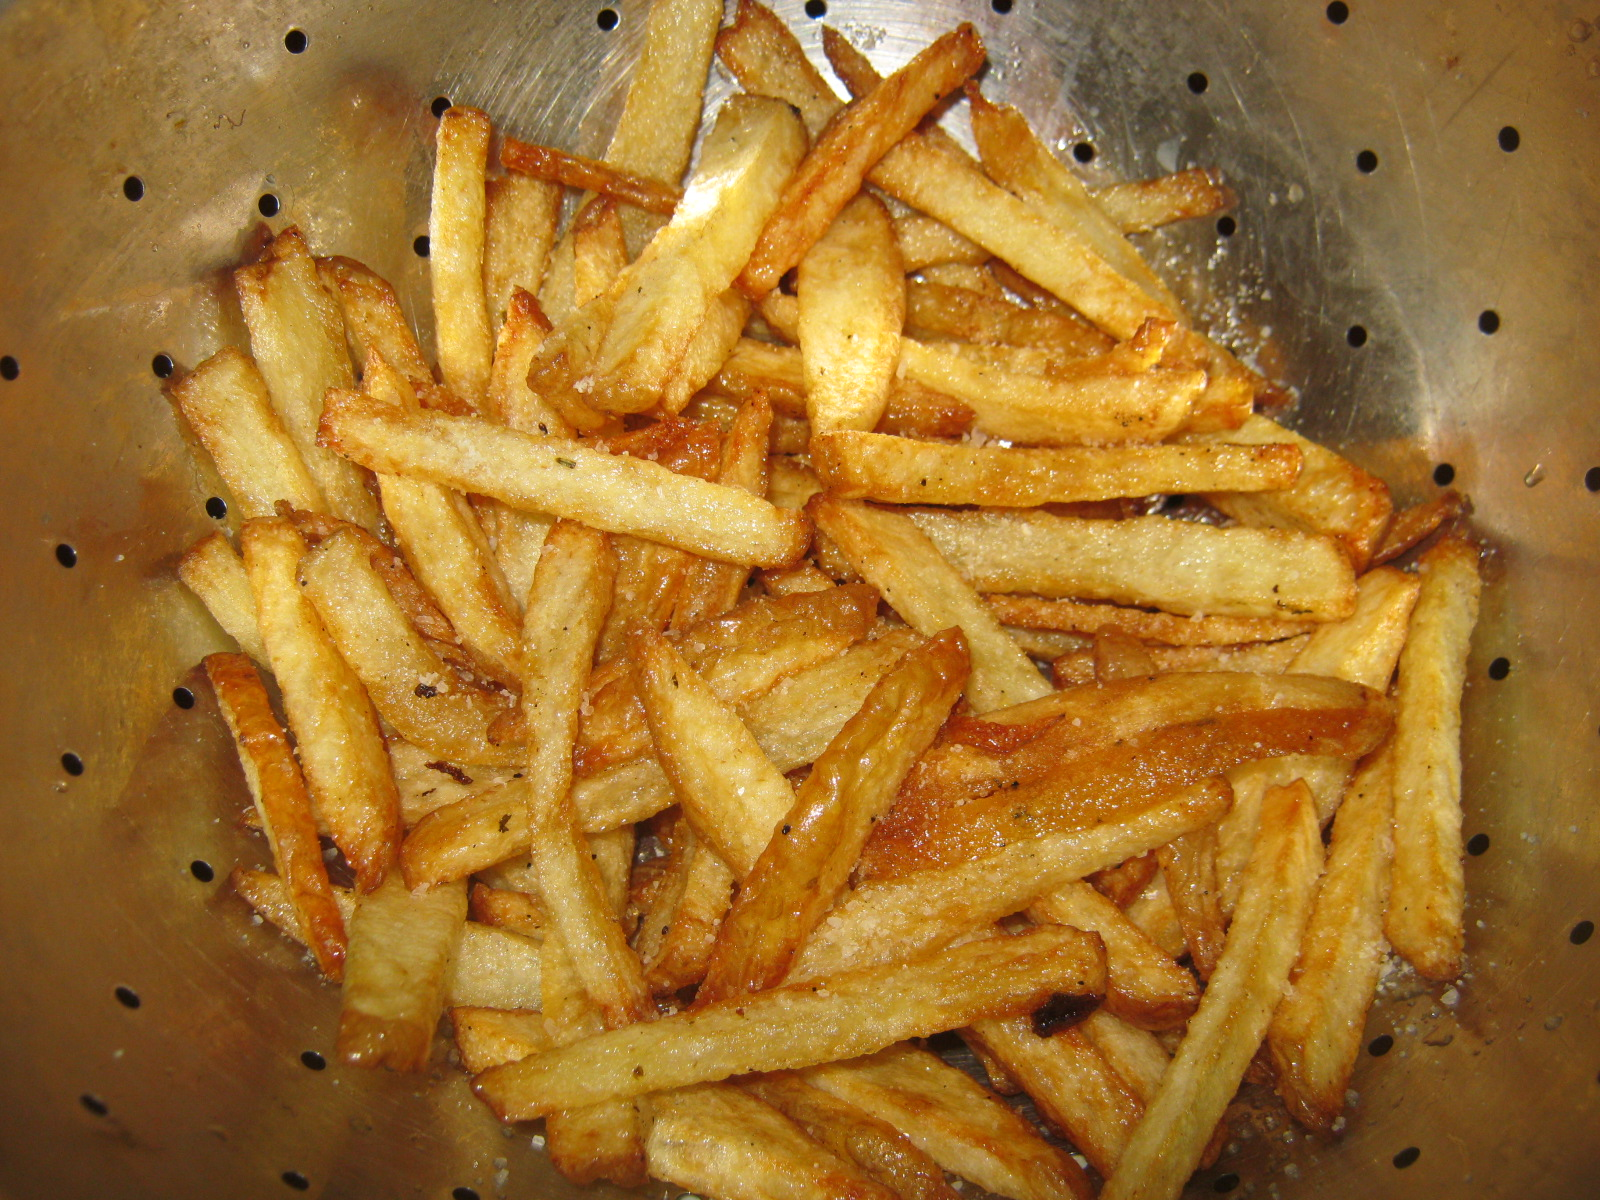 Quick and easy French fries in a colander.